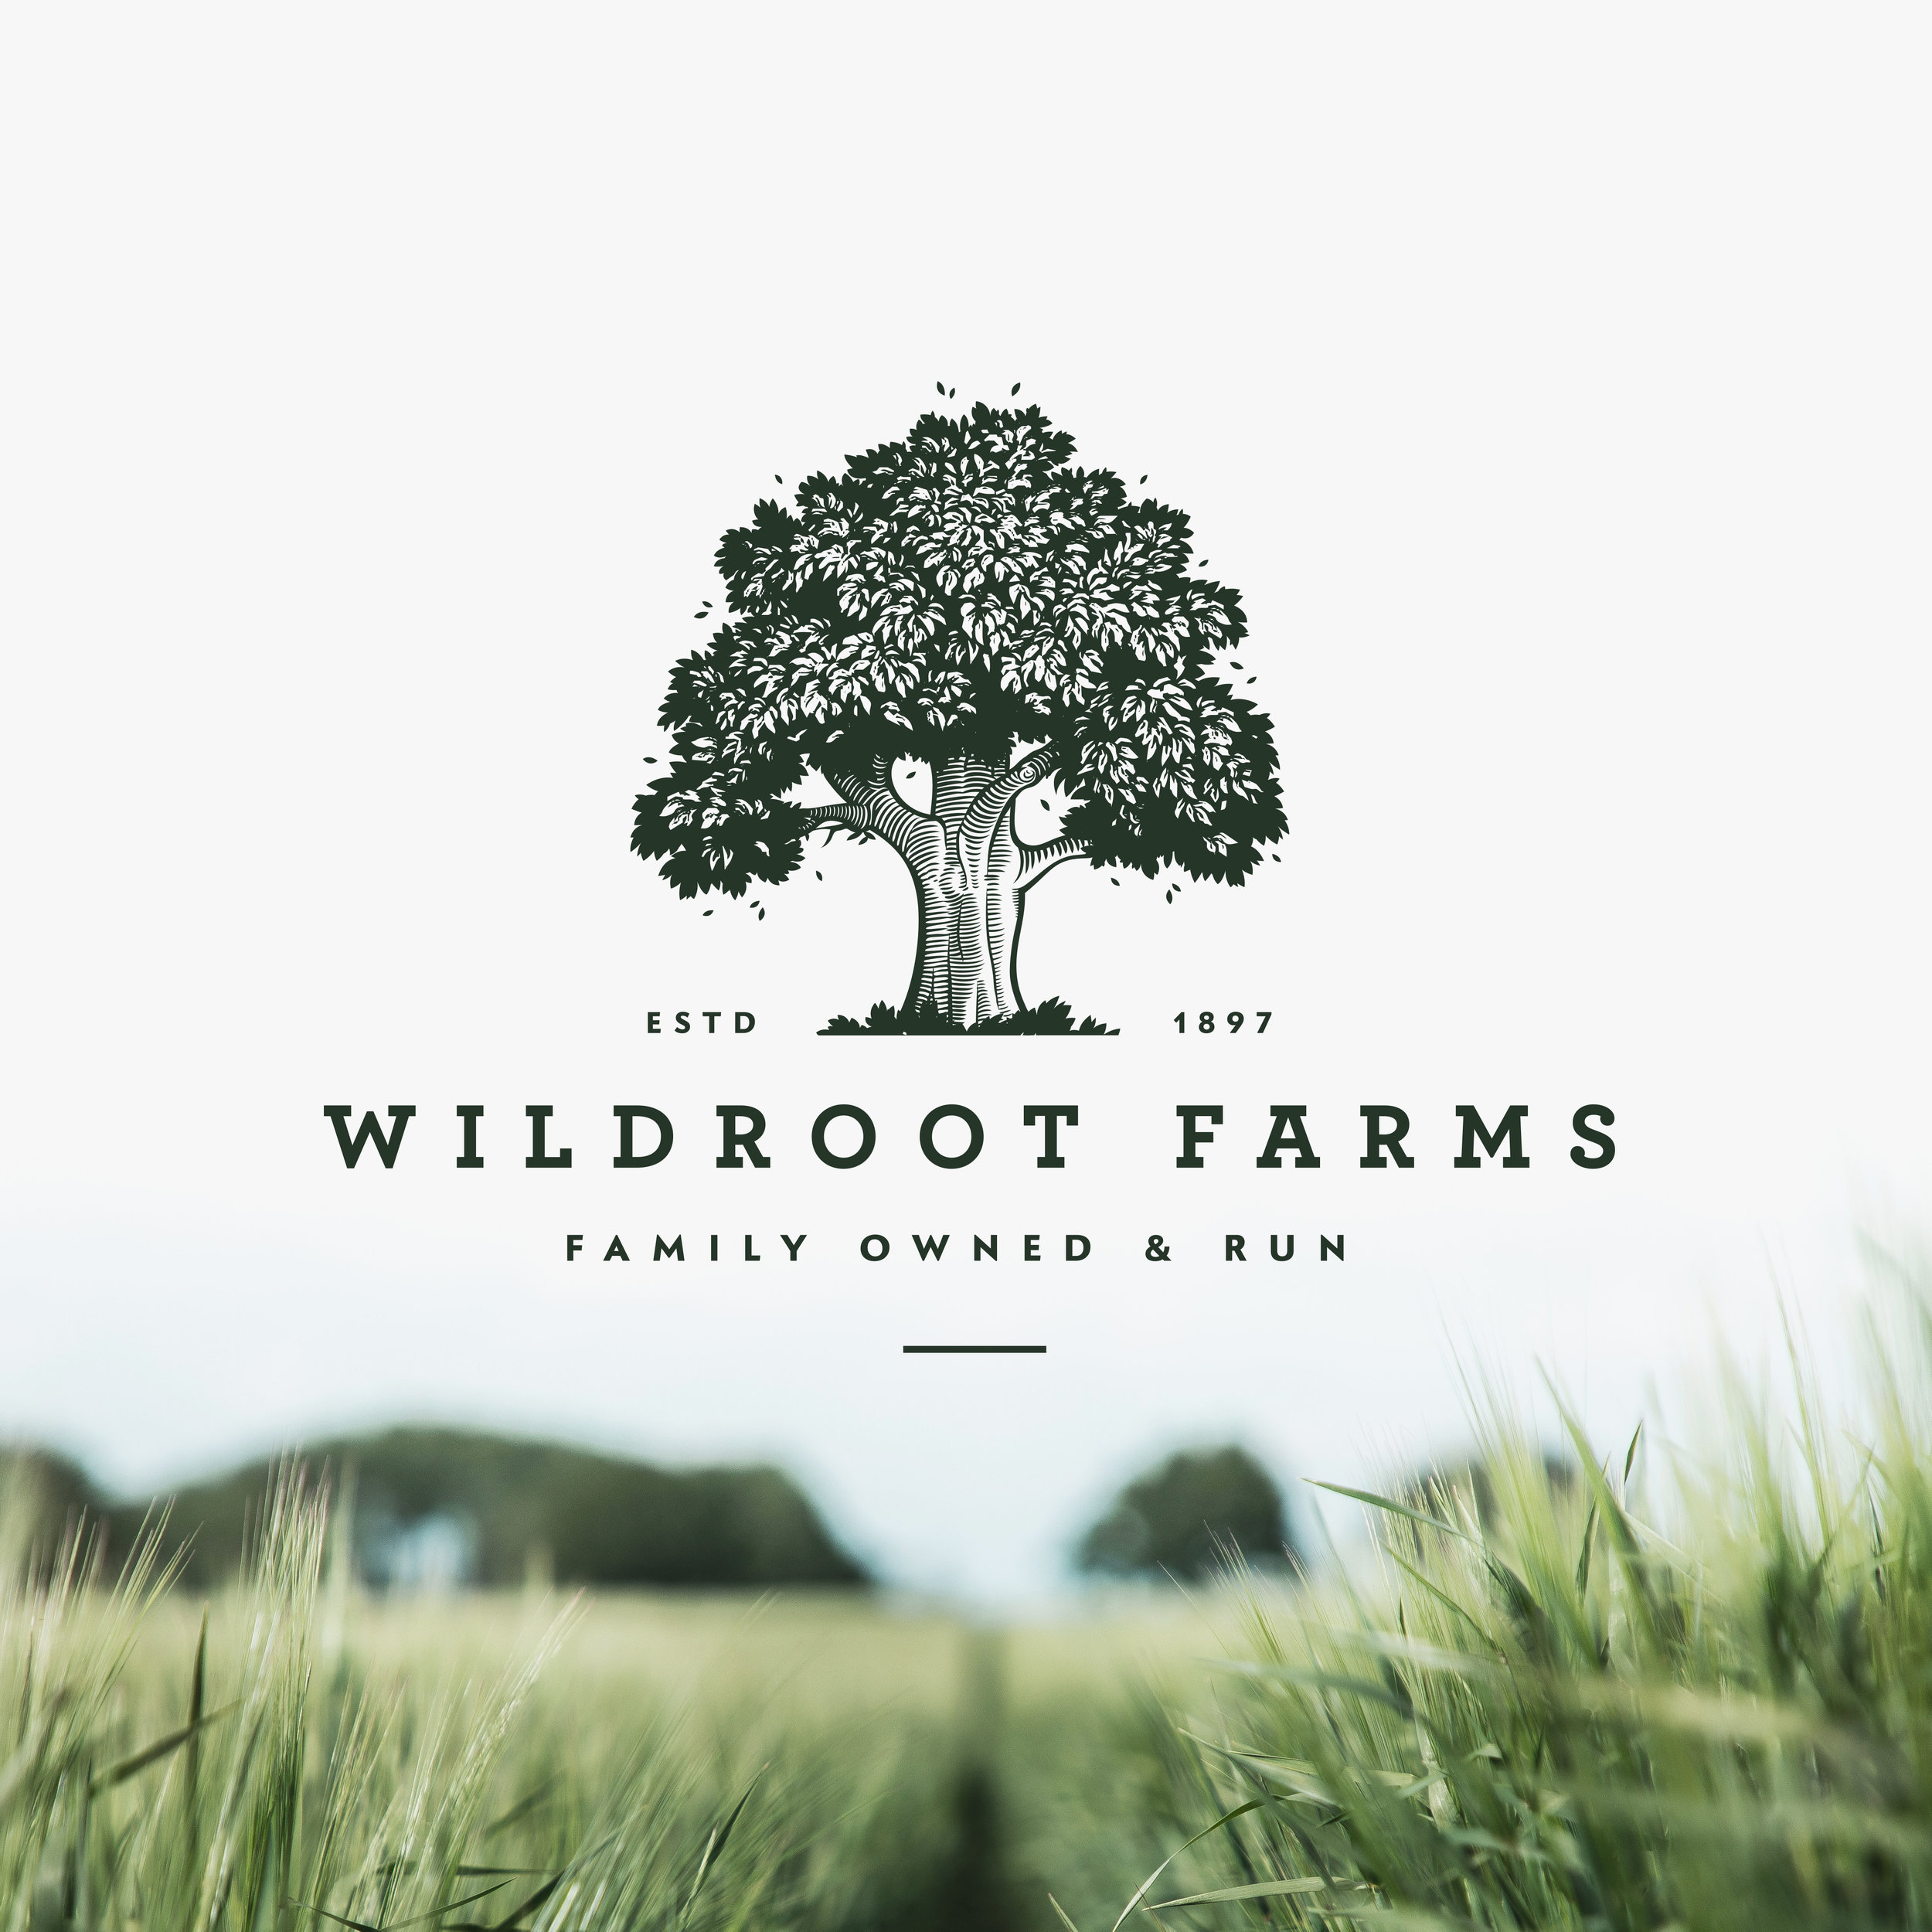 WILDROOT FARMS -  FARMING / AGRICULTURE BRAND PACKAGE